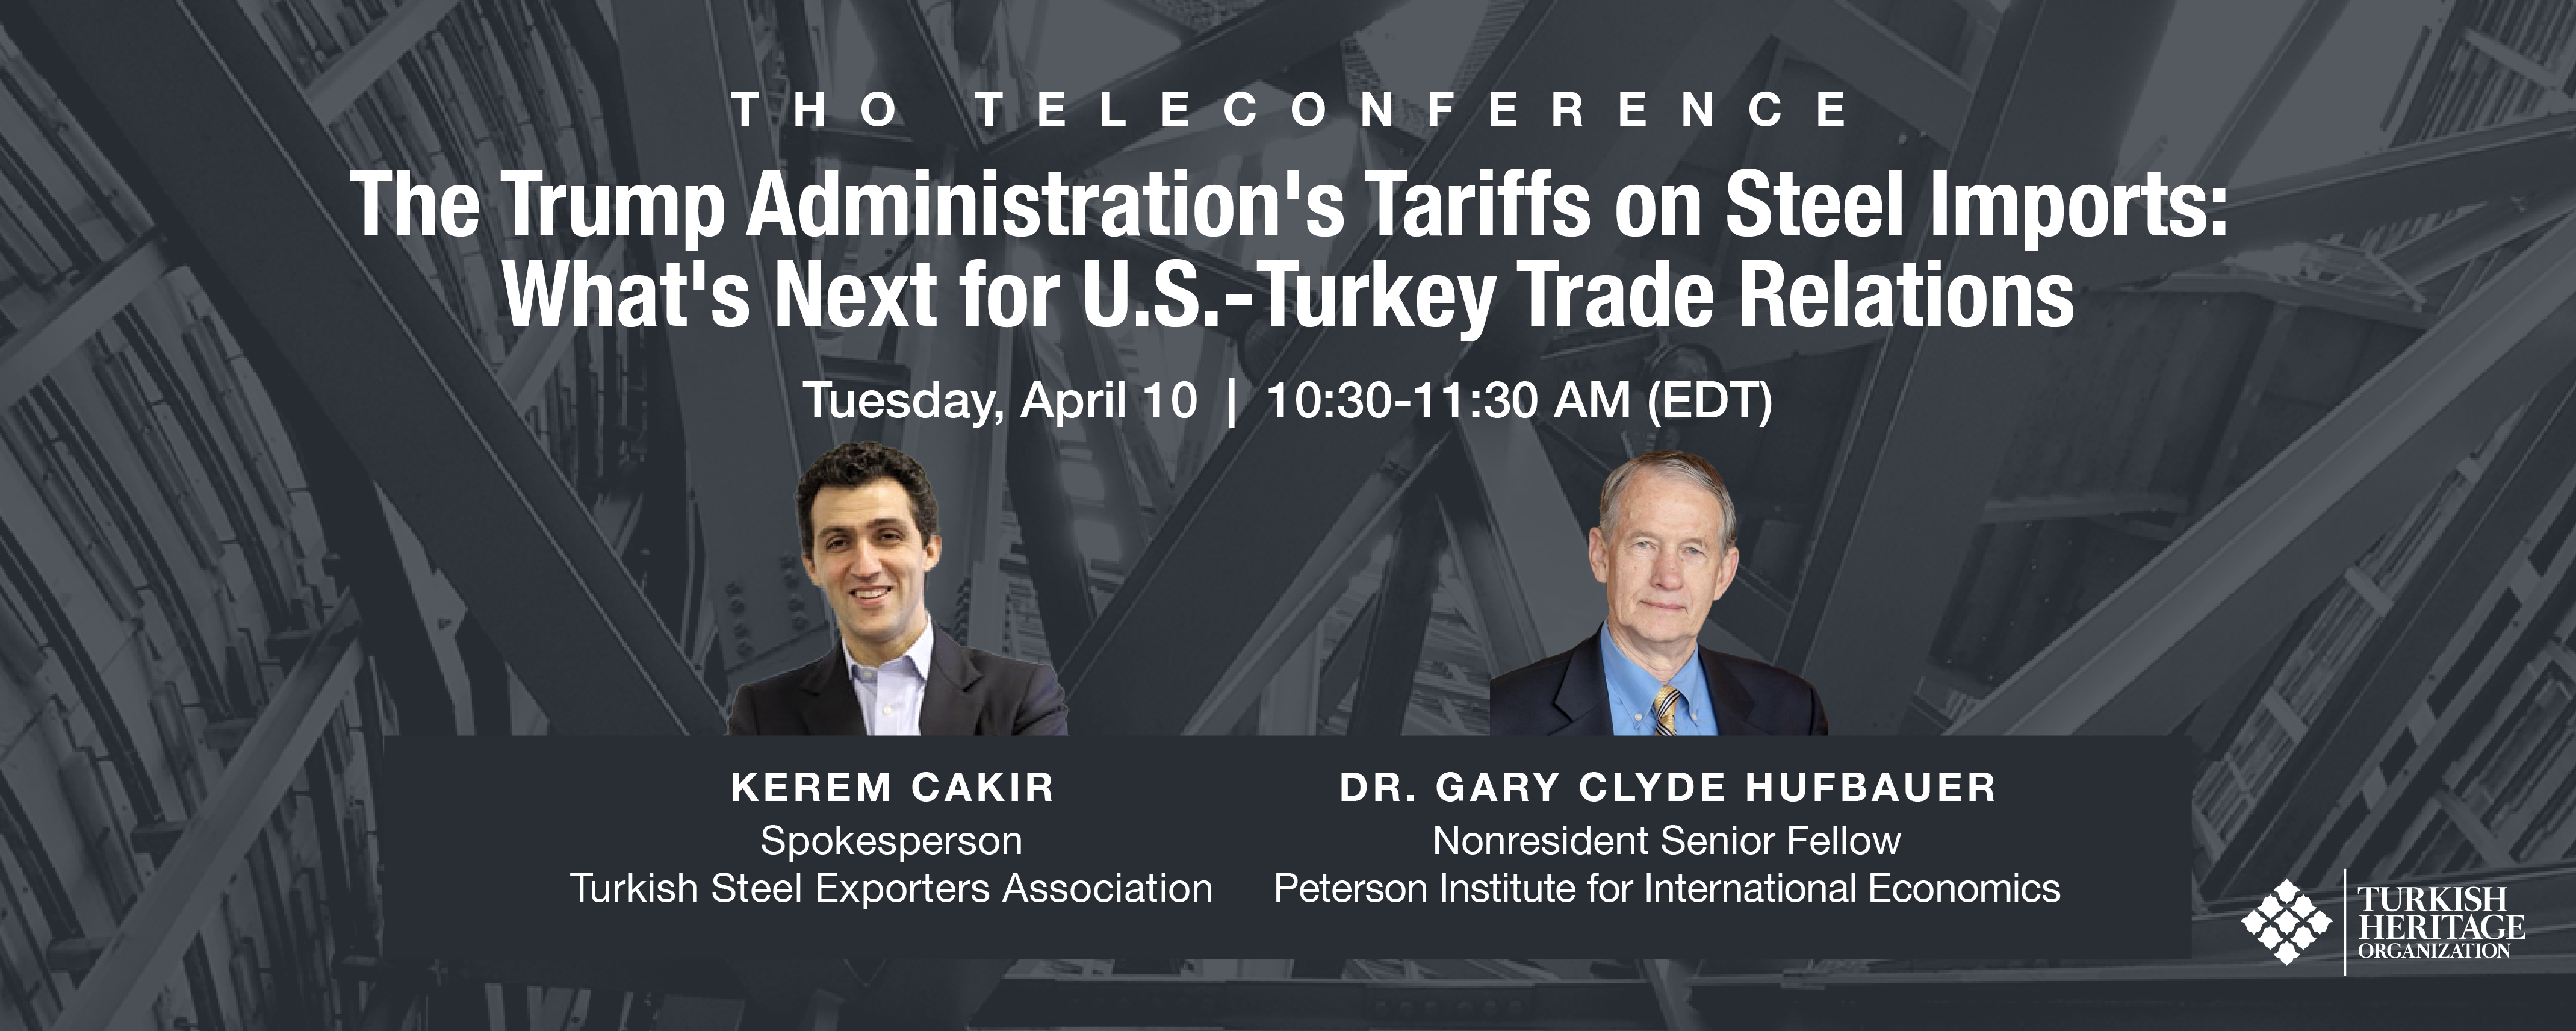 The Trump Administration's Tariffs on Steel Imports: What's Next for U.S.-Turkey Trade Relations